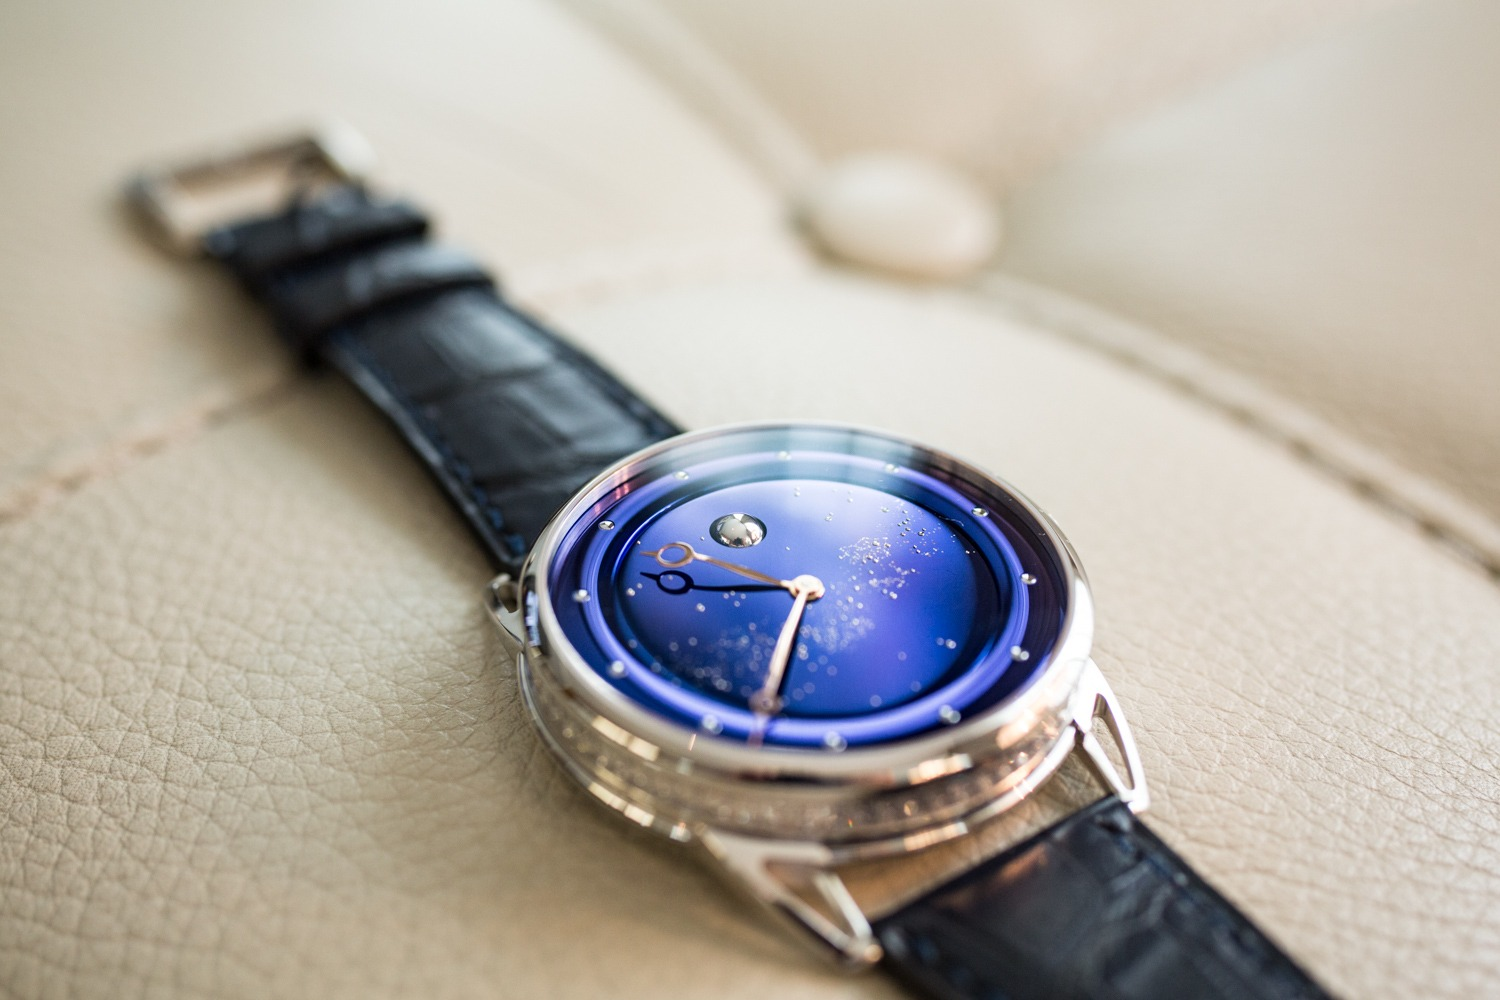 De Bethune - DB25 Milky Way